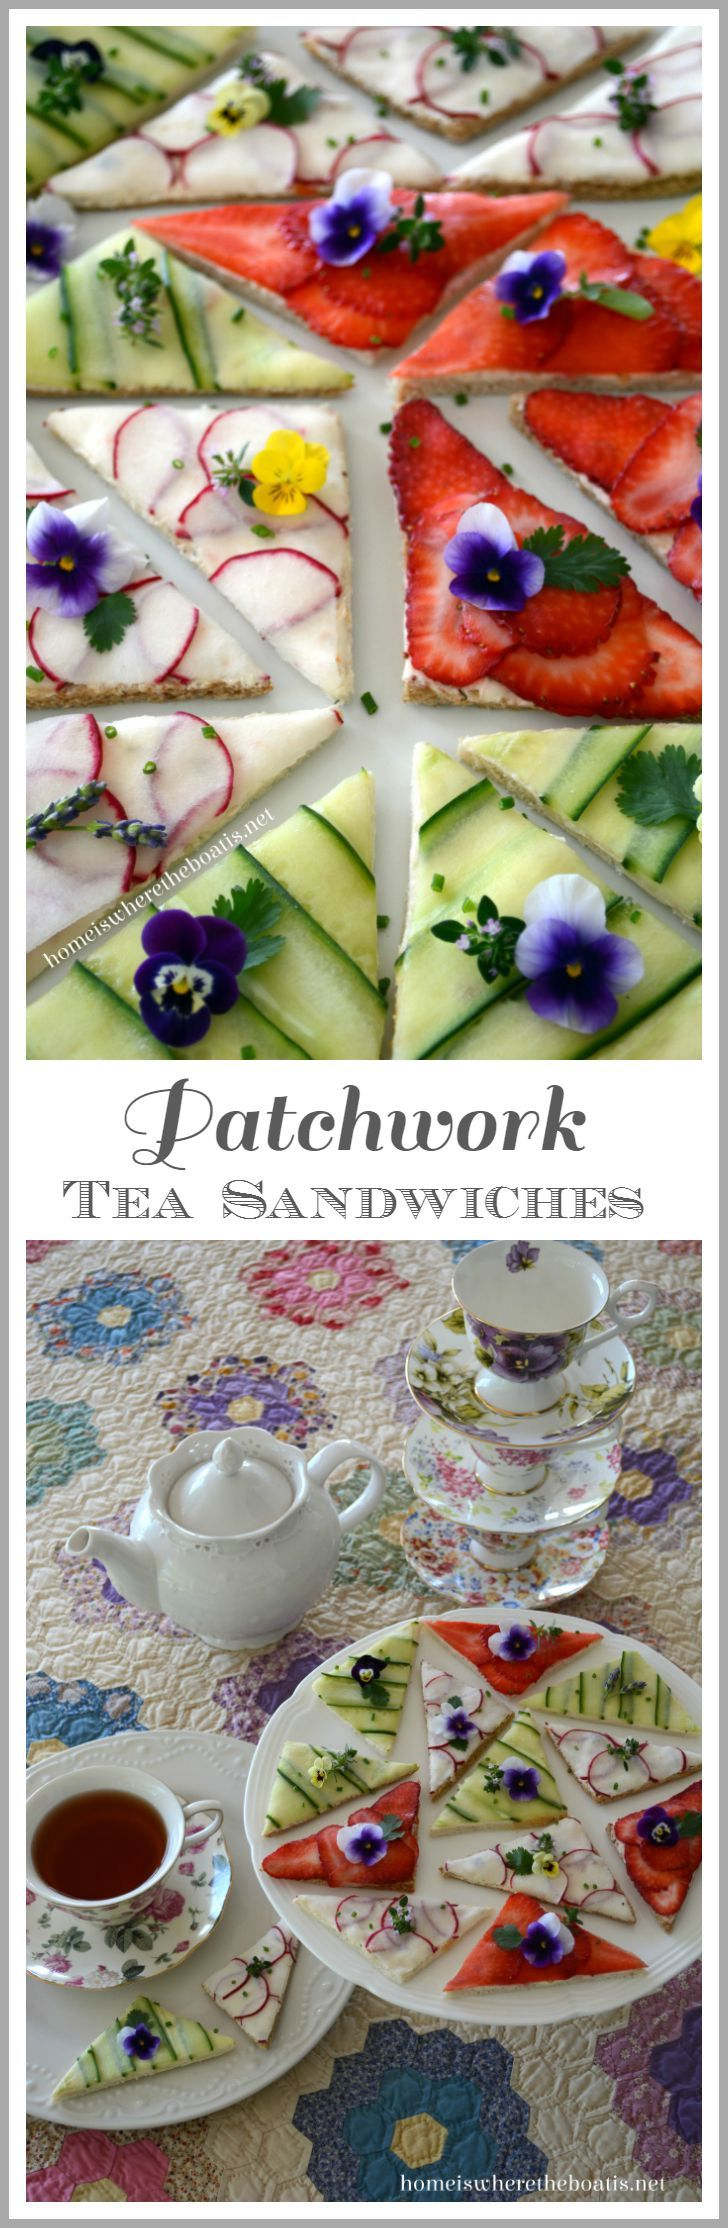 Patchwork Tea Sandwiches! A patchwork of cucumber, thinly sliced radishes, and strawberries on top of a cream cheese spread   ©homeiswheretheboatis.net #teaparty #recipes